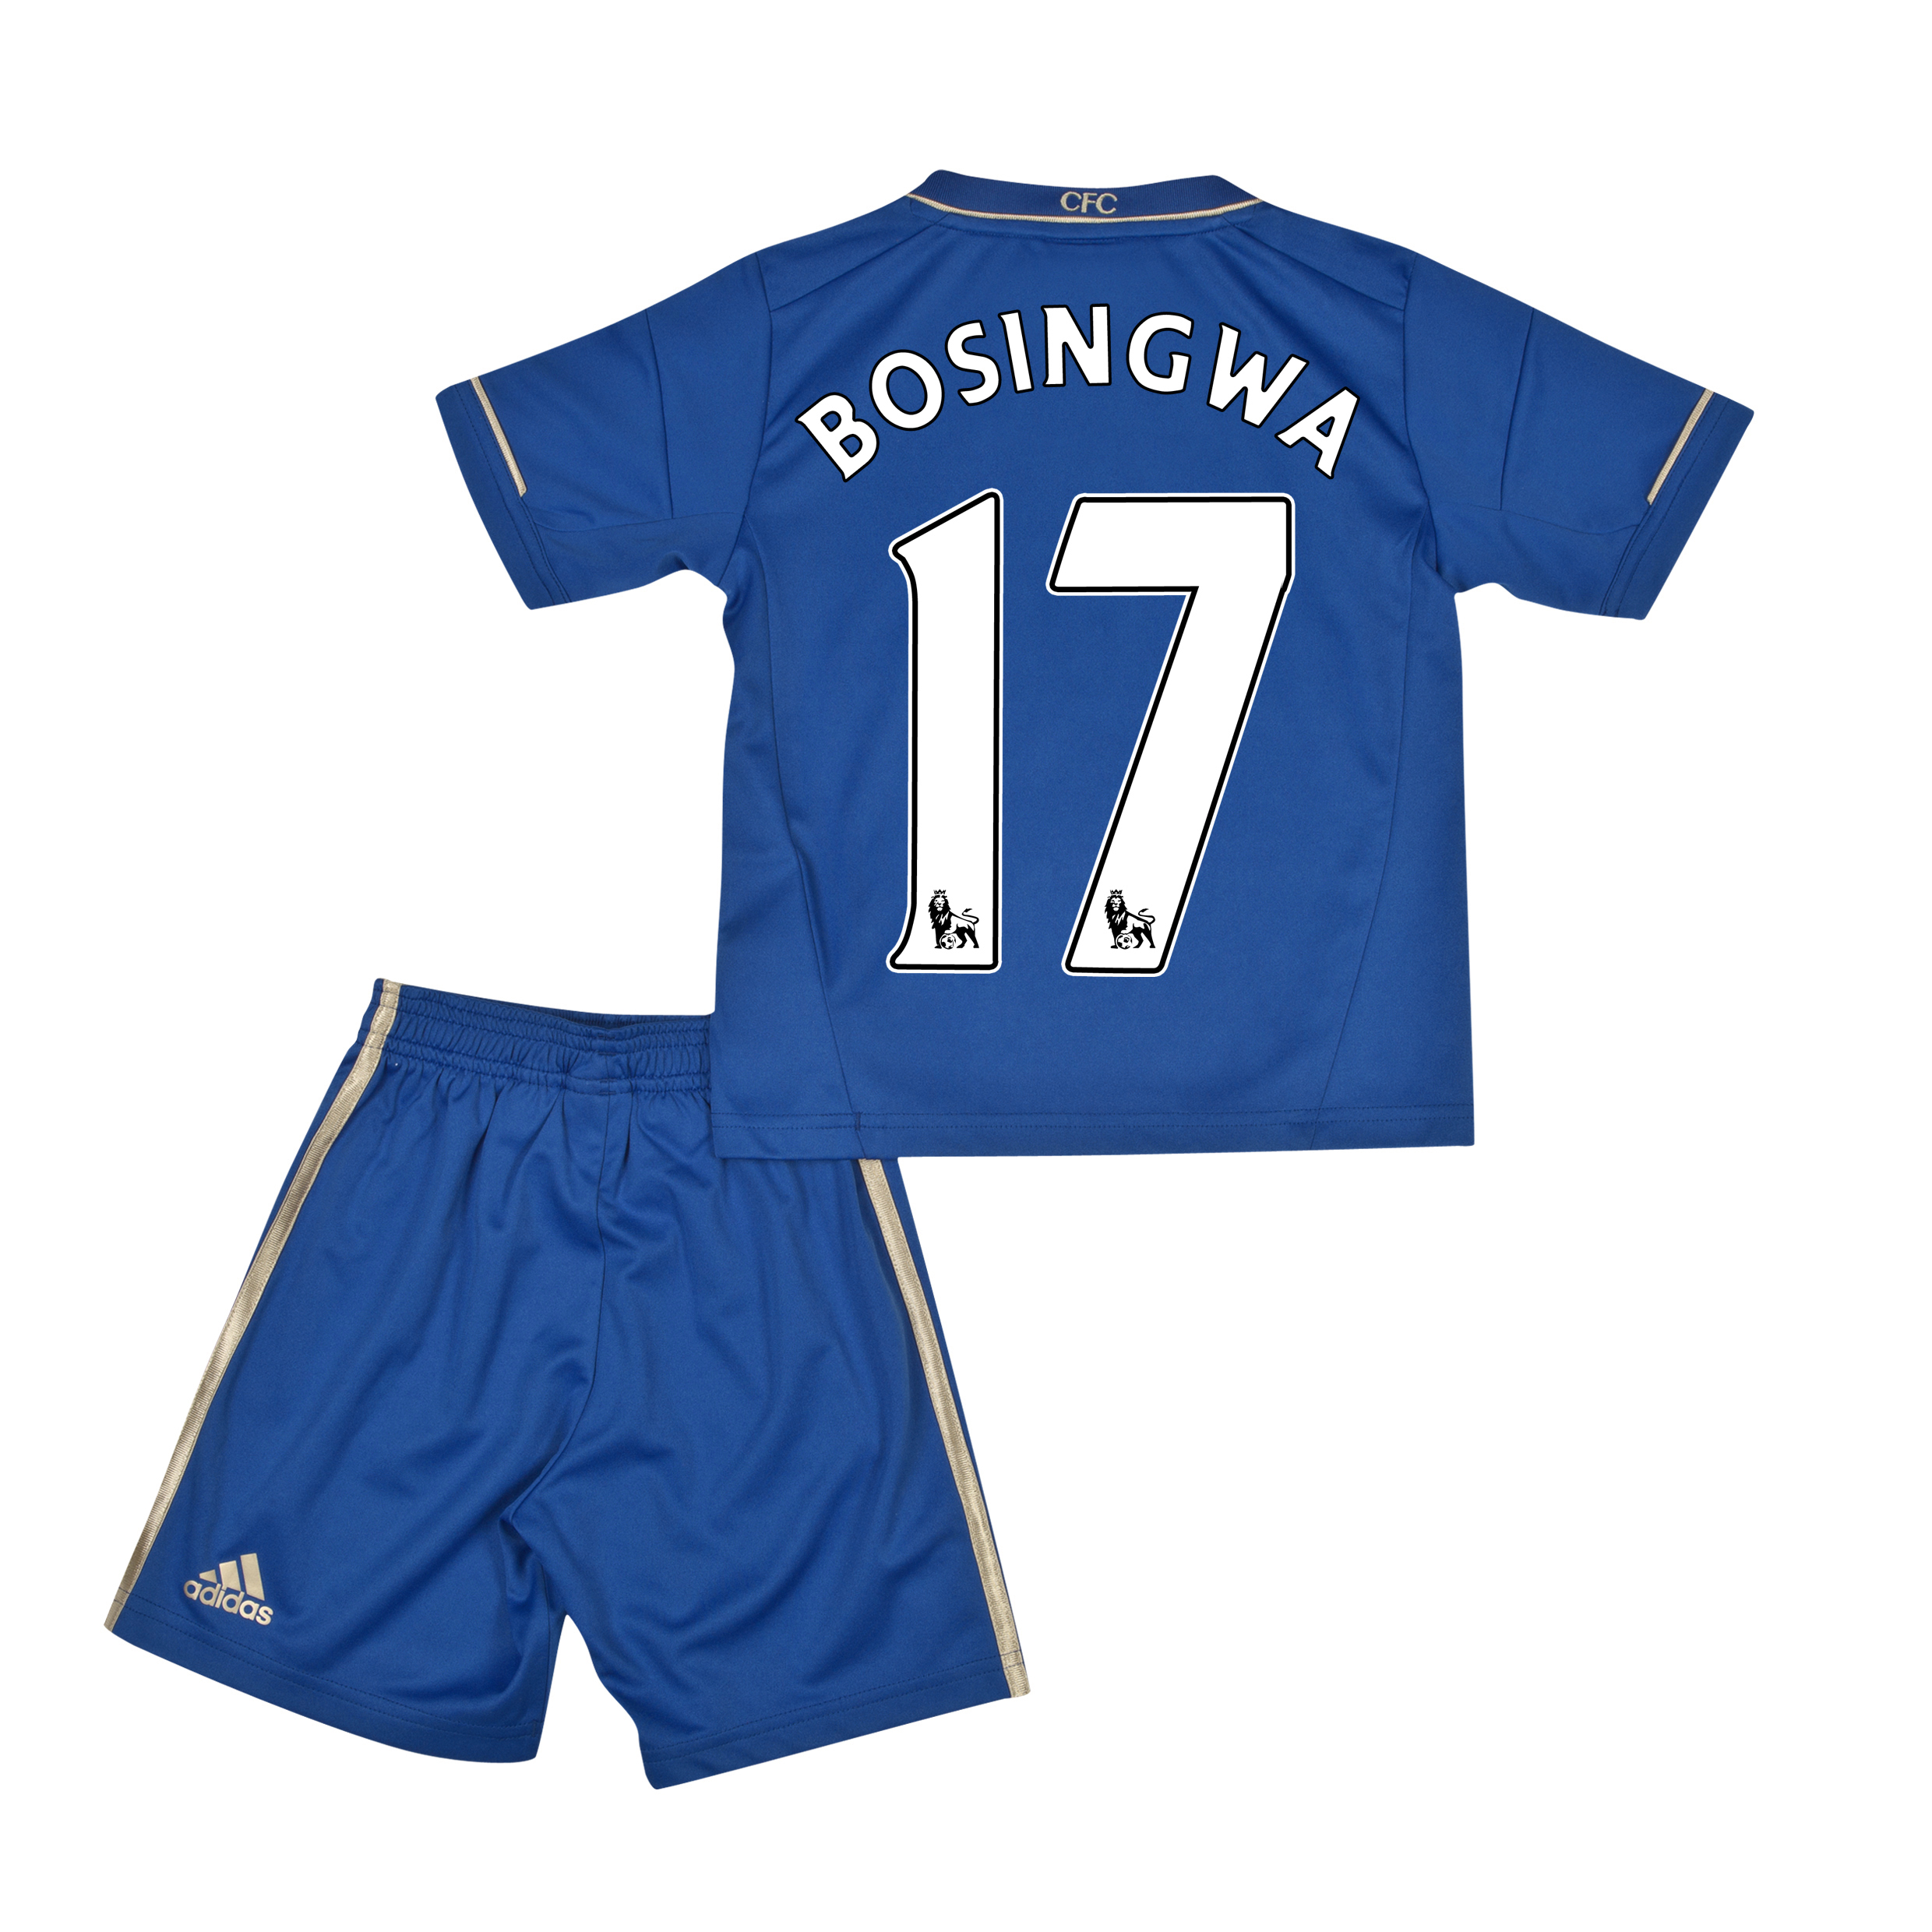 Chelsea Home Mini Kit 2012/13 with Bosingwa 17 printing